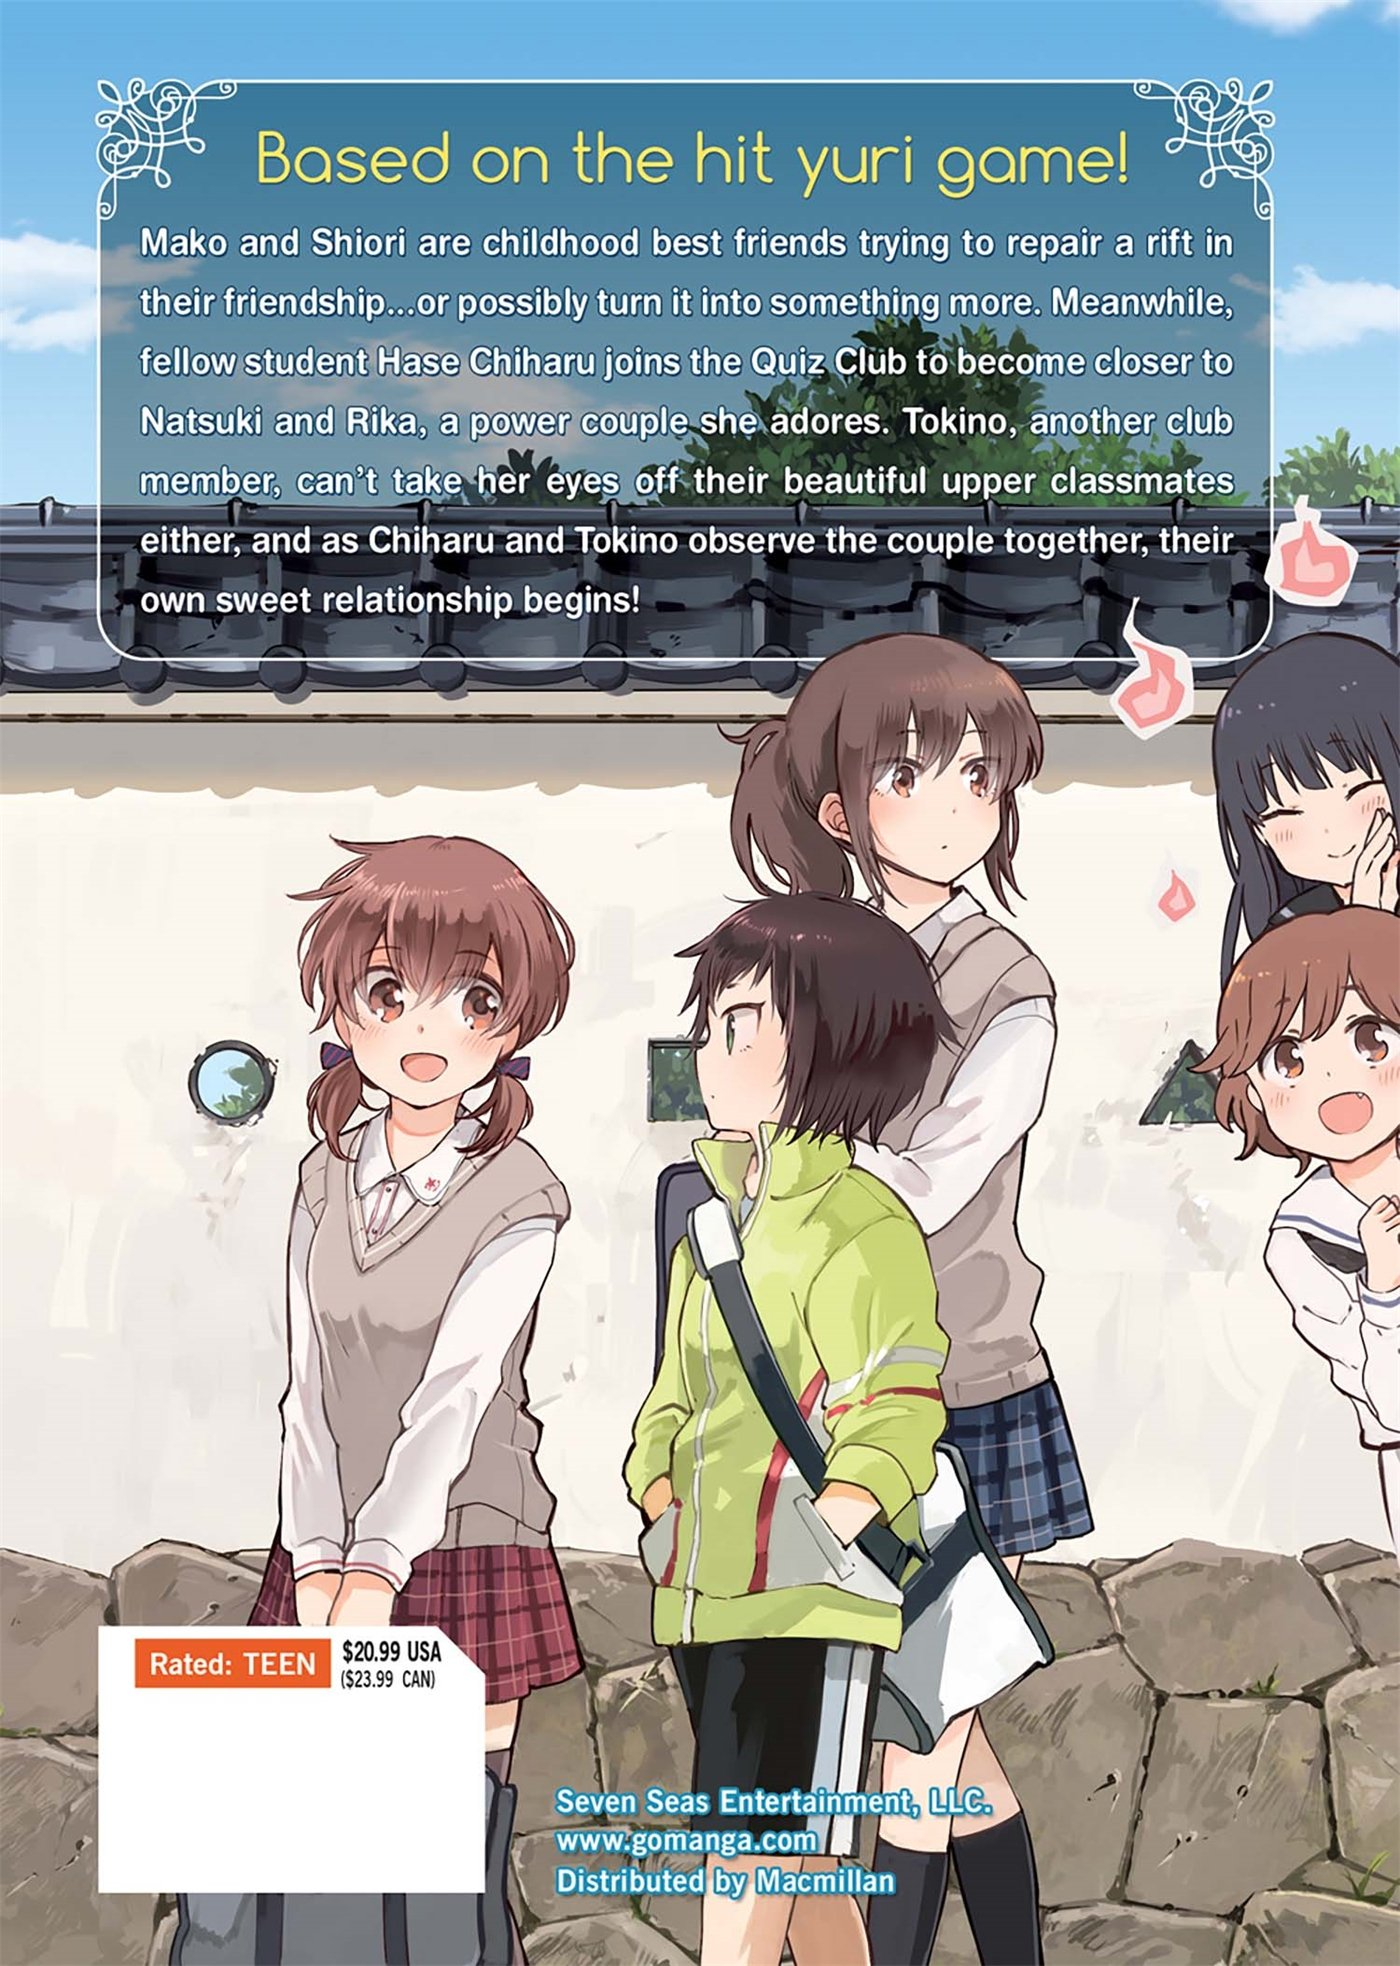 Kindred Spirits On The Roof Complete Collection Amazoncouk Hachi Ito 9781626924680 Books